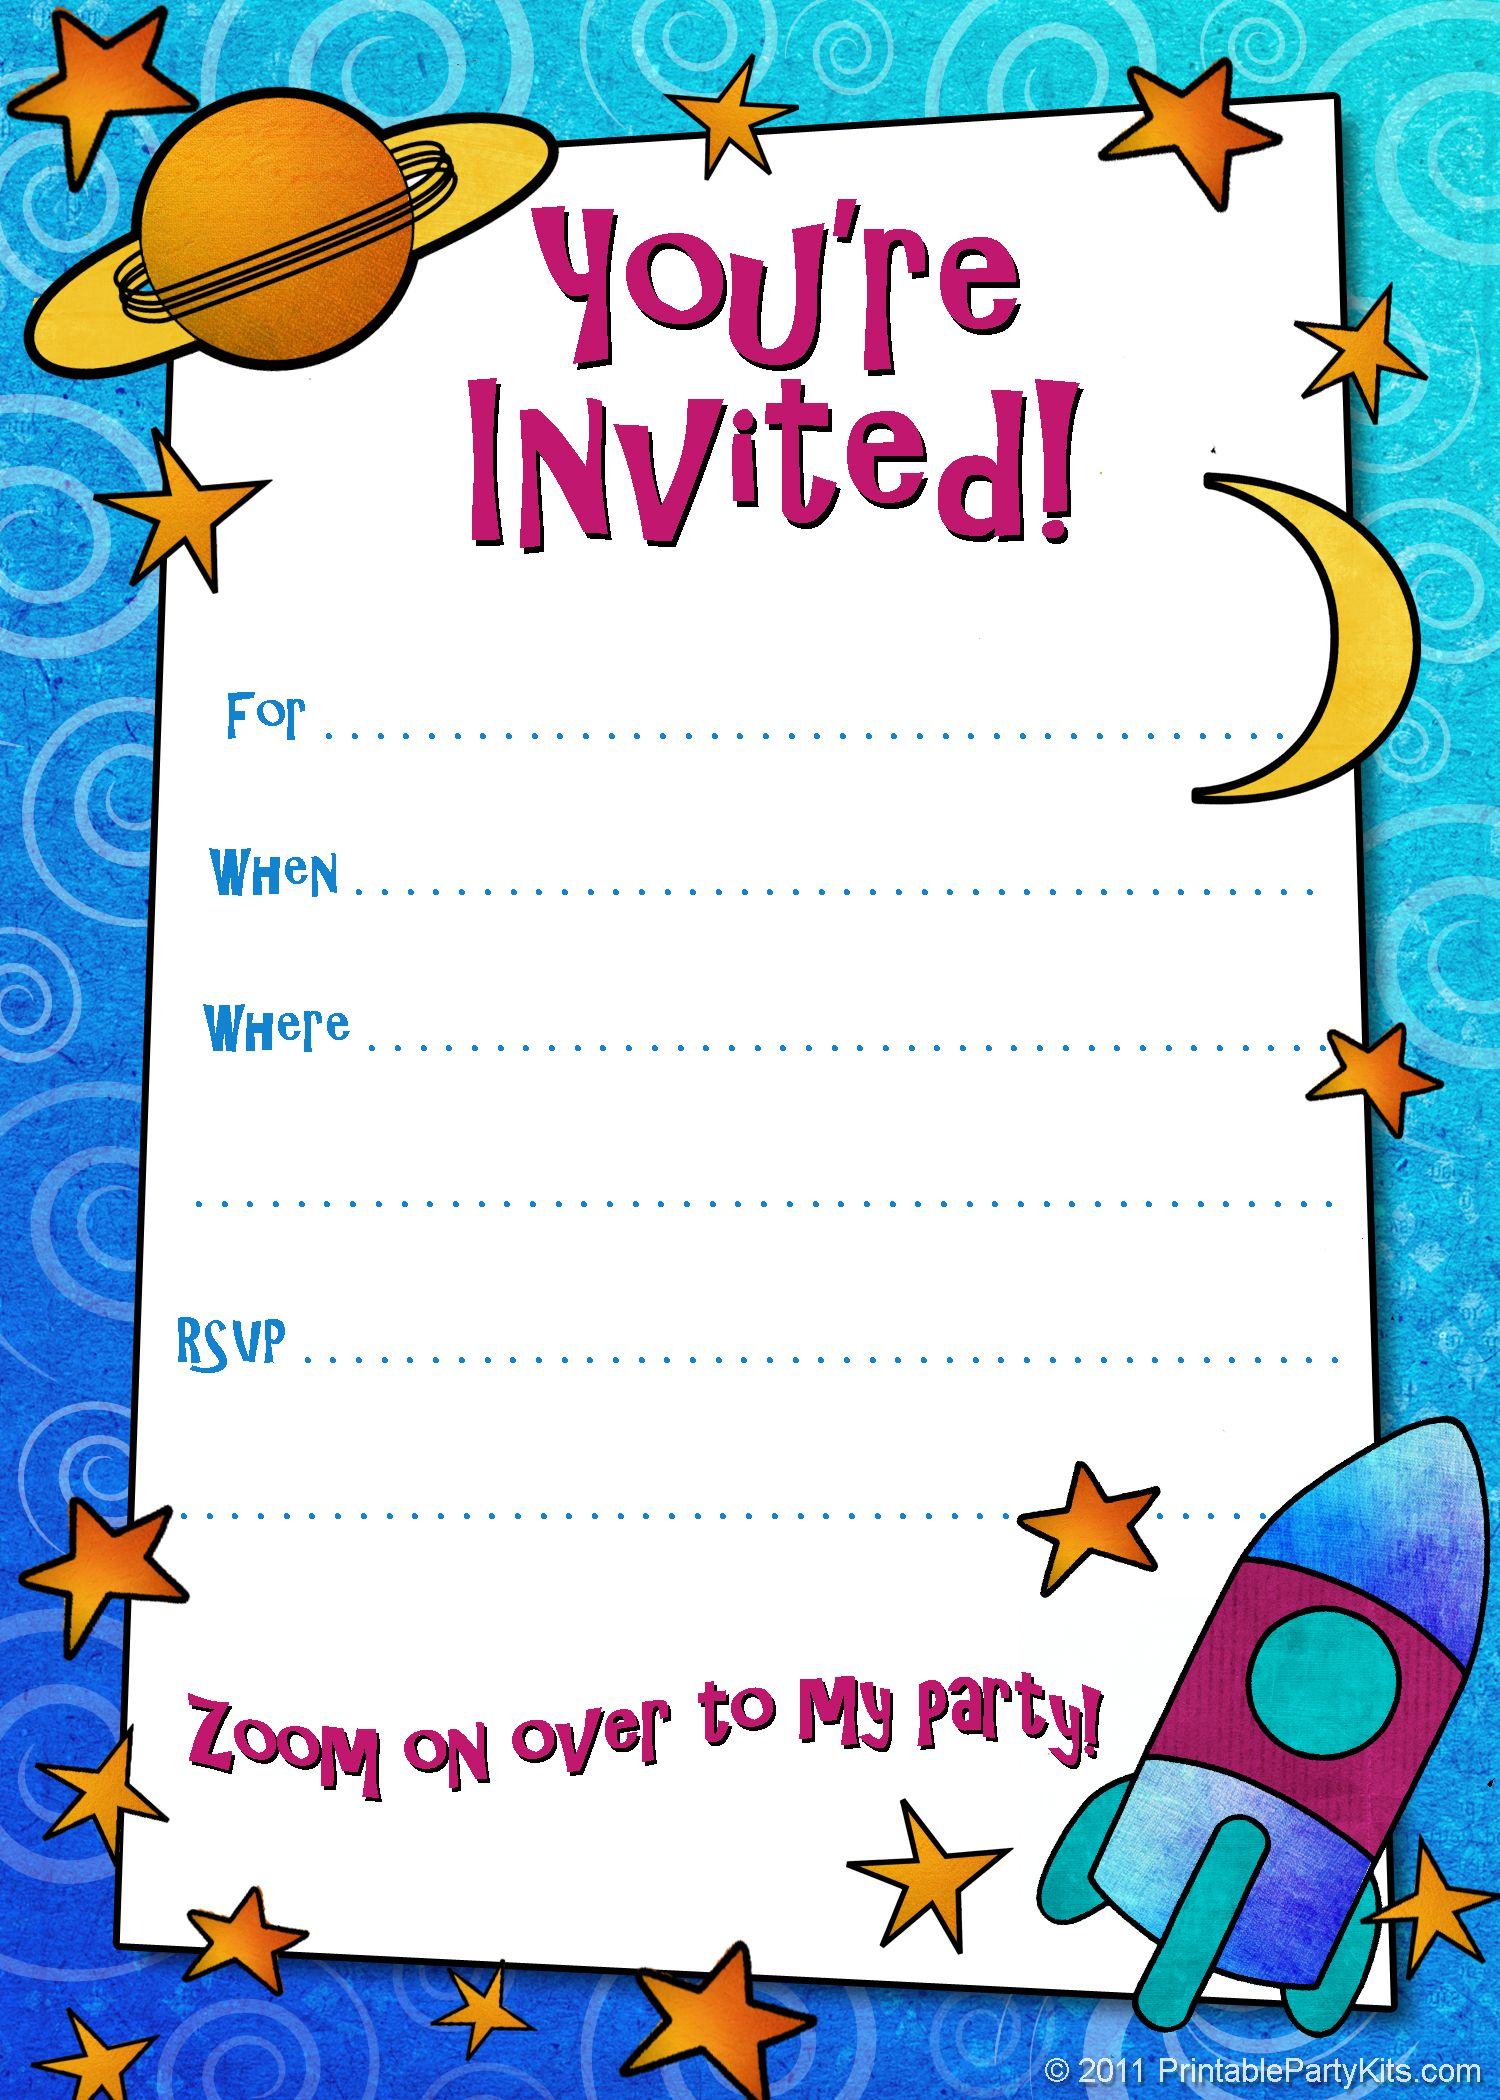 Boys birthday invitation jcmanagement boys birthday invitation filmwisefo Gallery